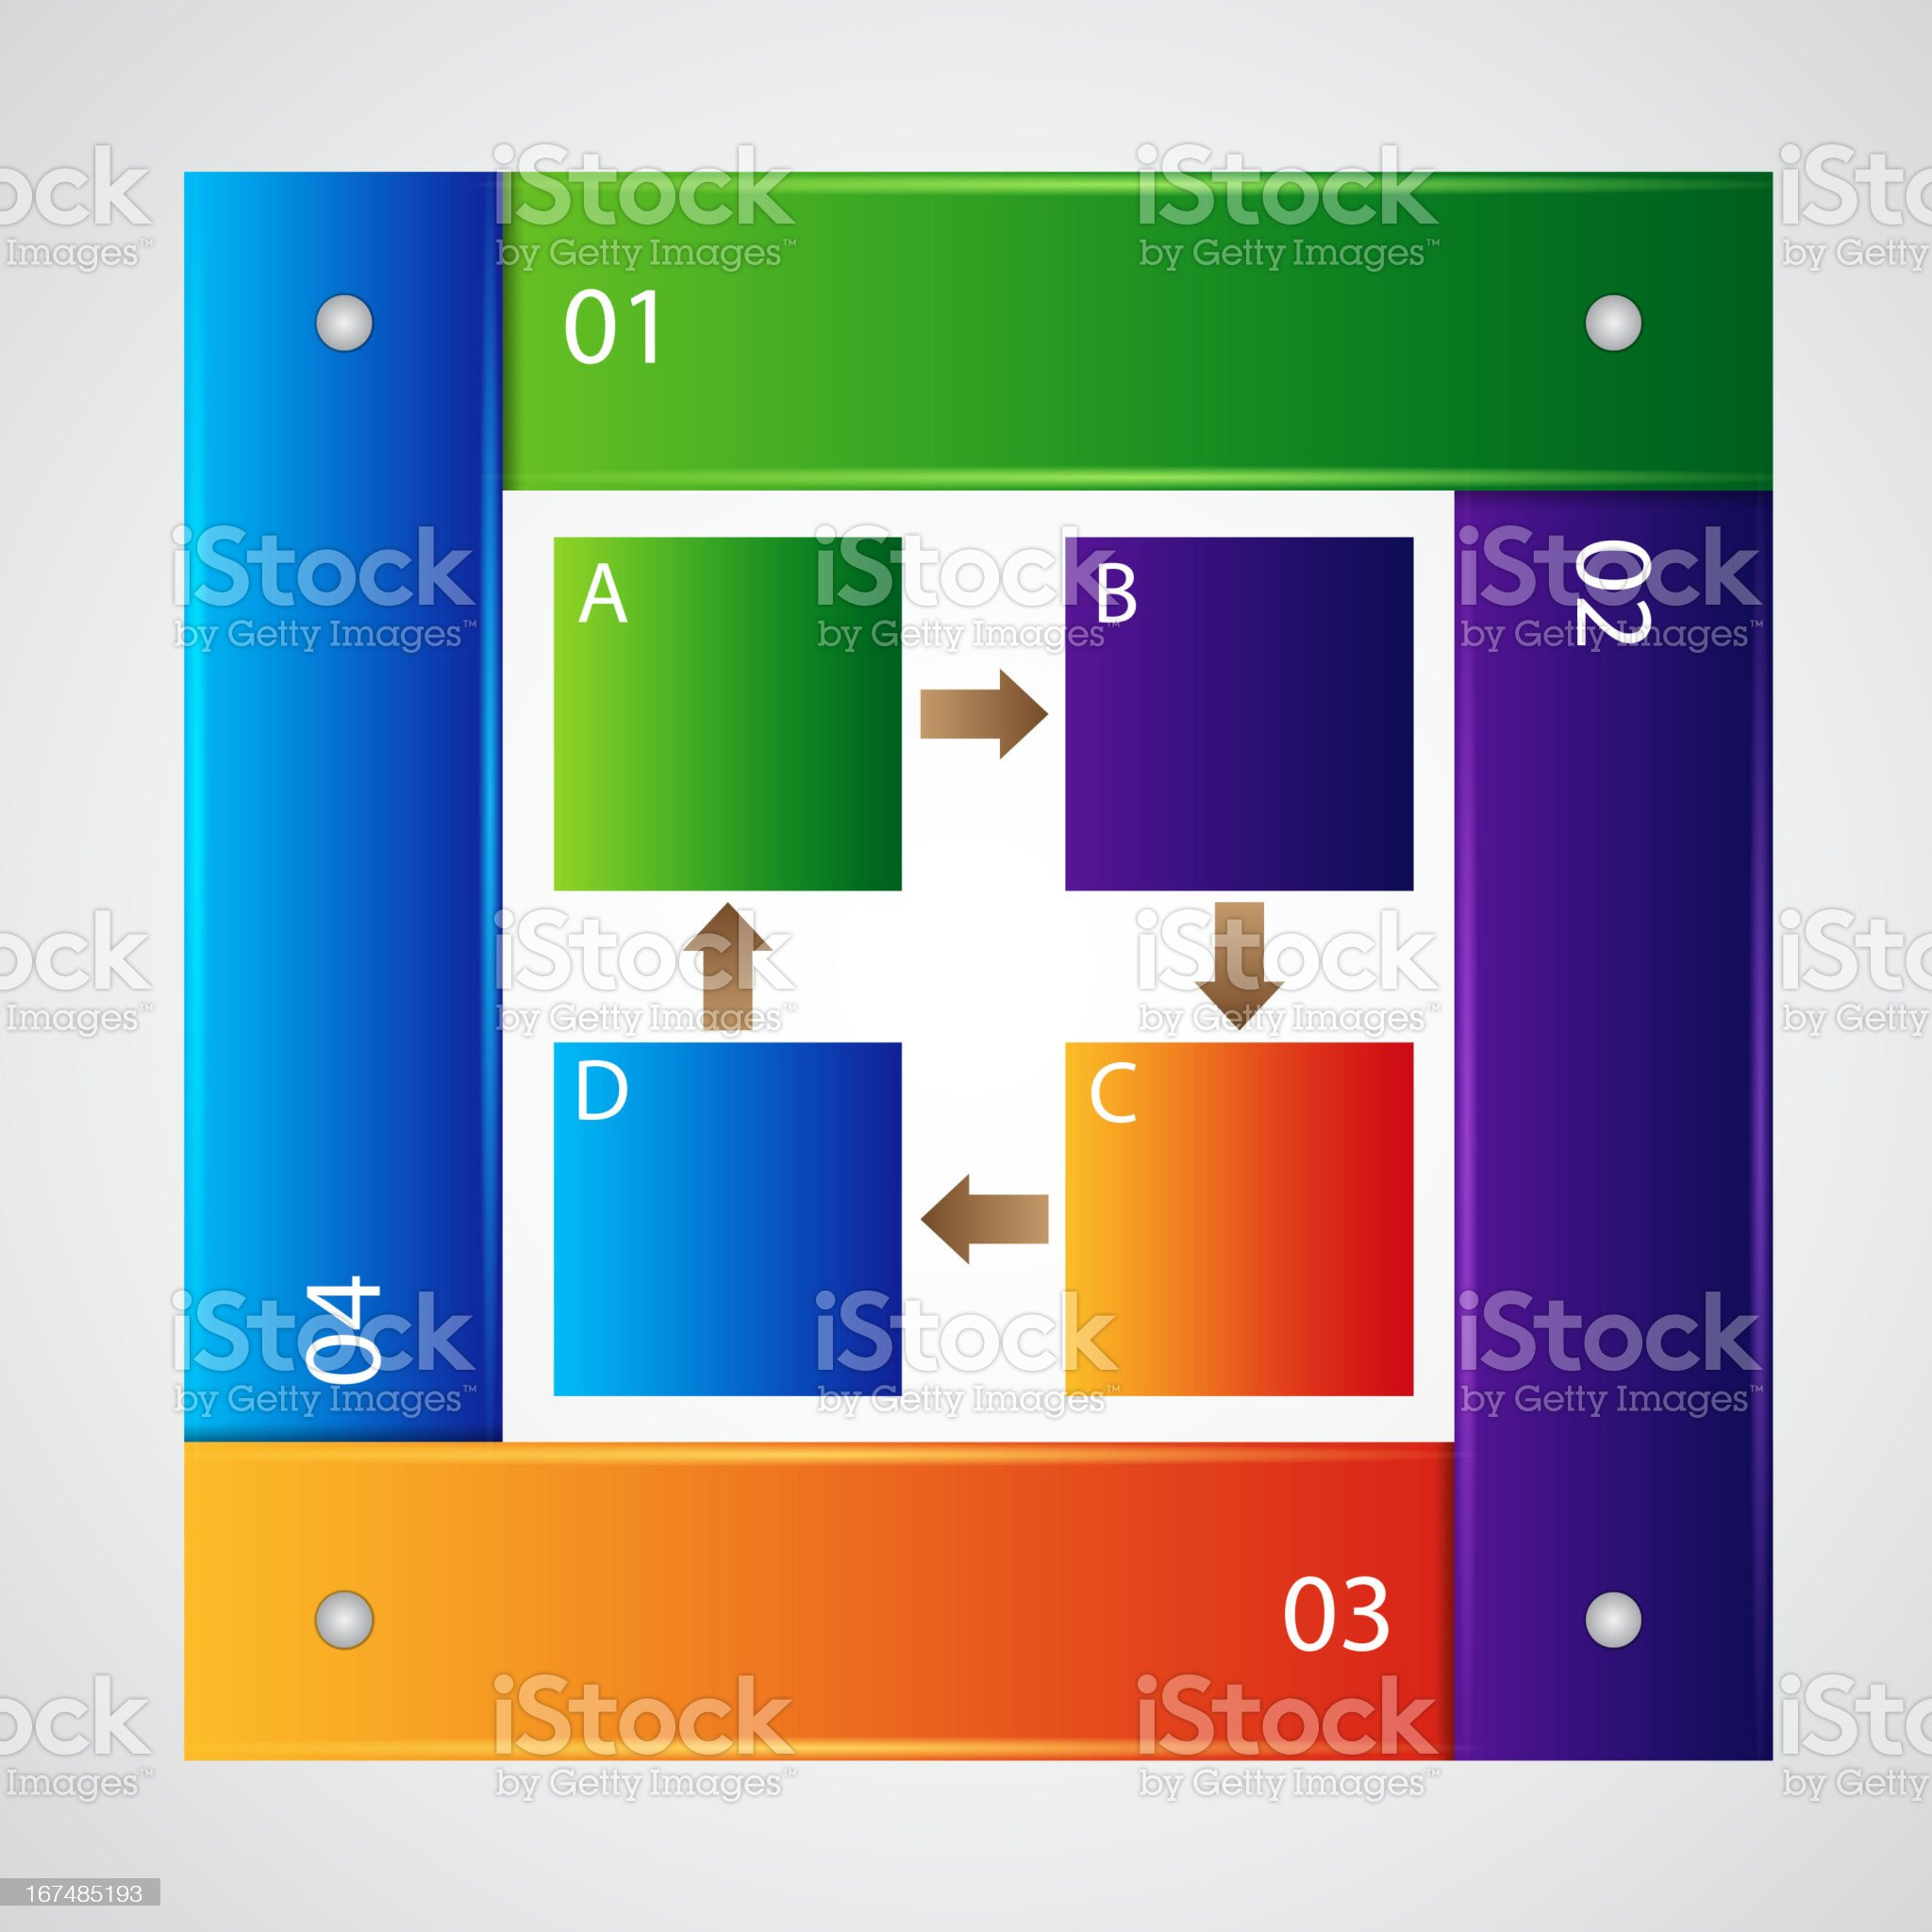 Infographic template royalty-free stock vector art